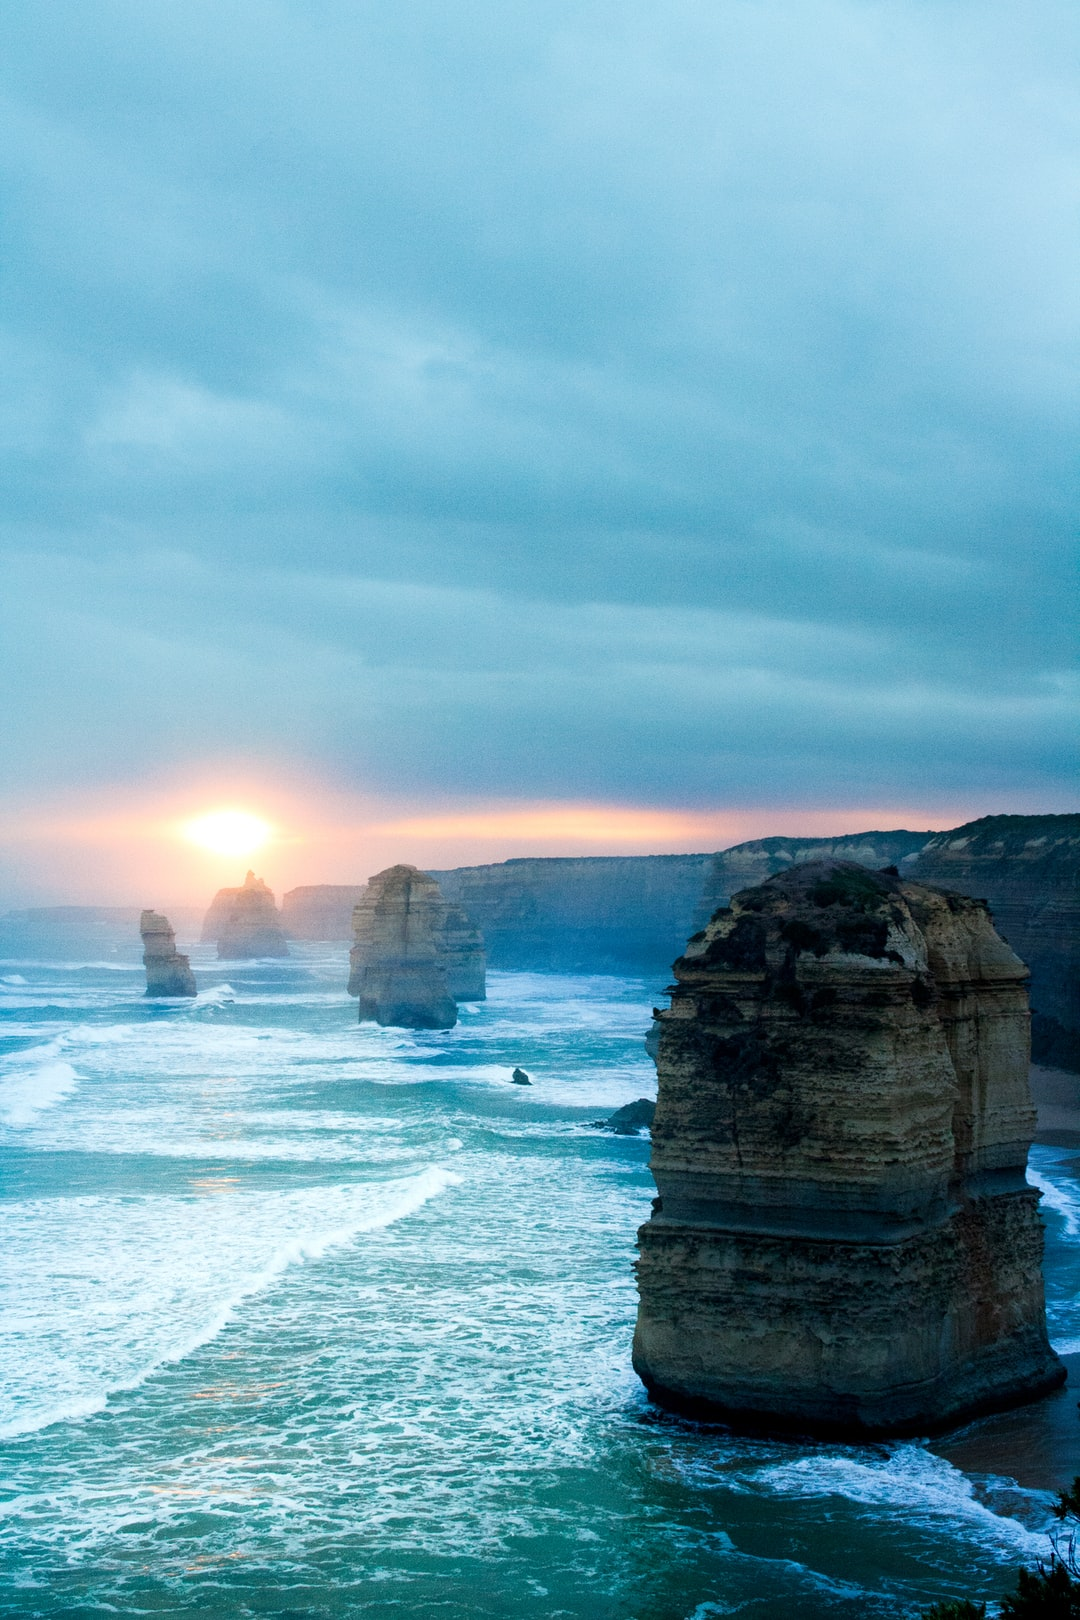 While traveling the Great Ocean Road I had the chance to live one of the most beautiful sunsets in the world